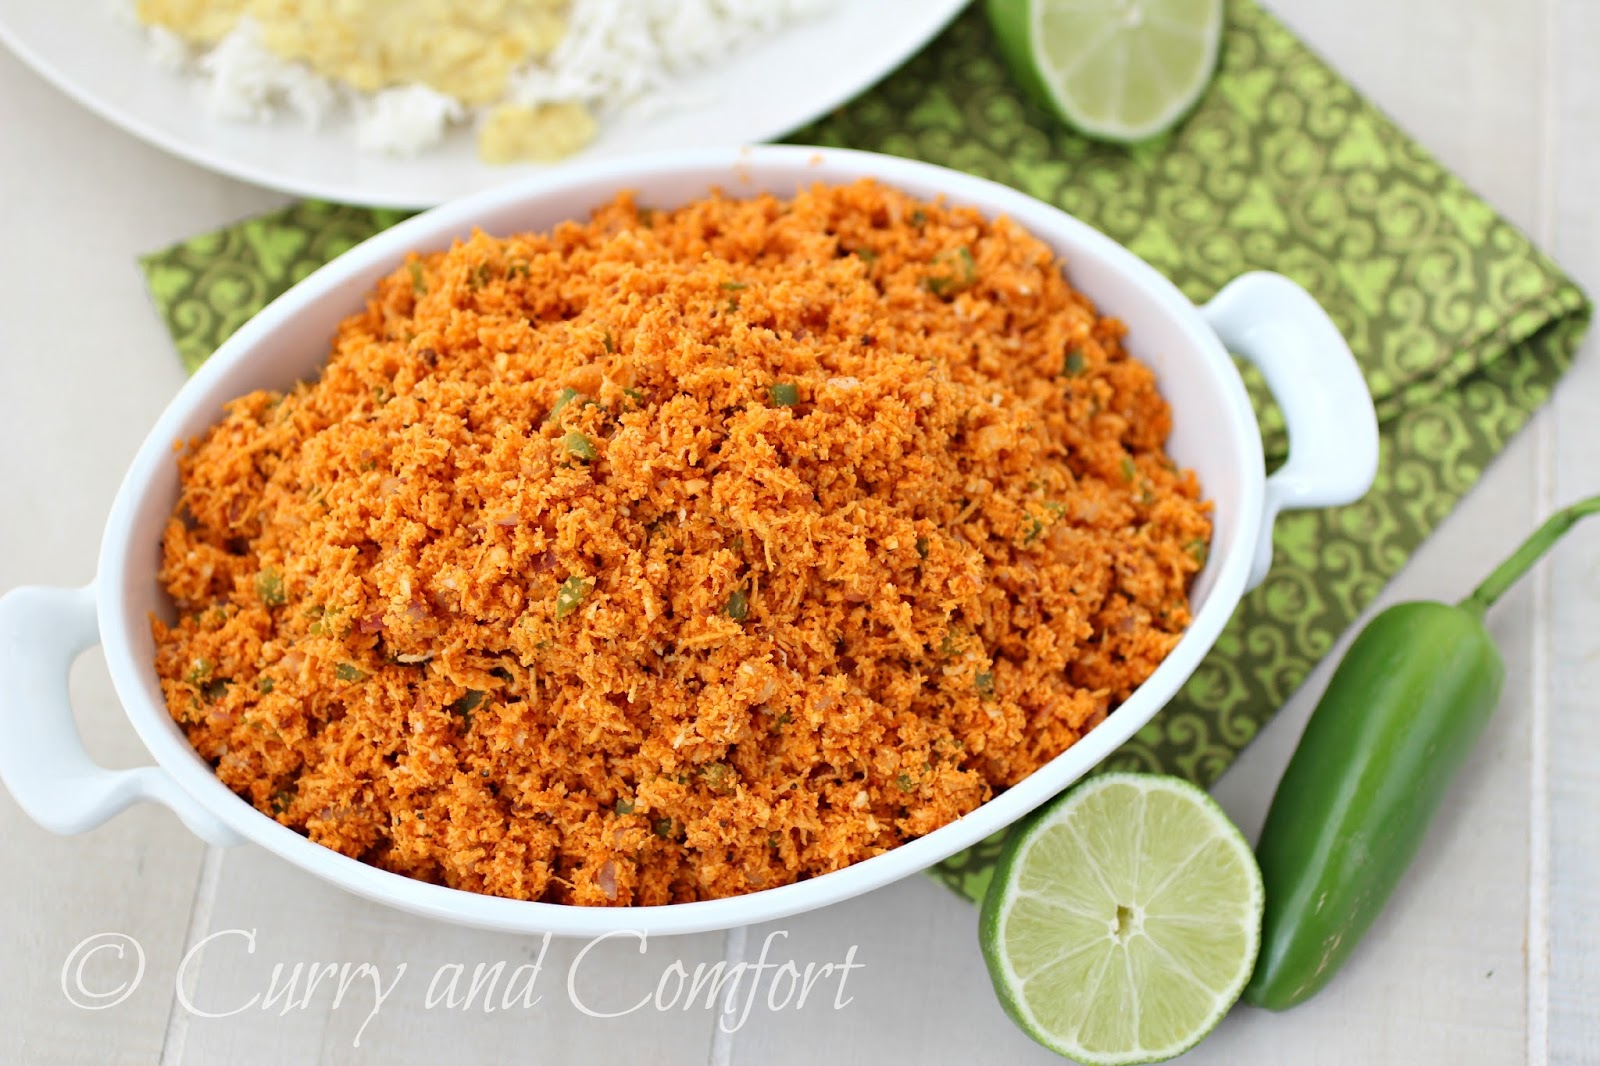 My sri lankan kitchen with lymol- kunisso sambol - recipe no 129